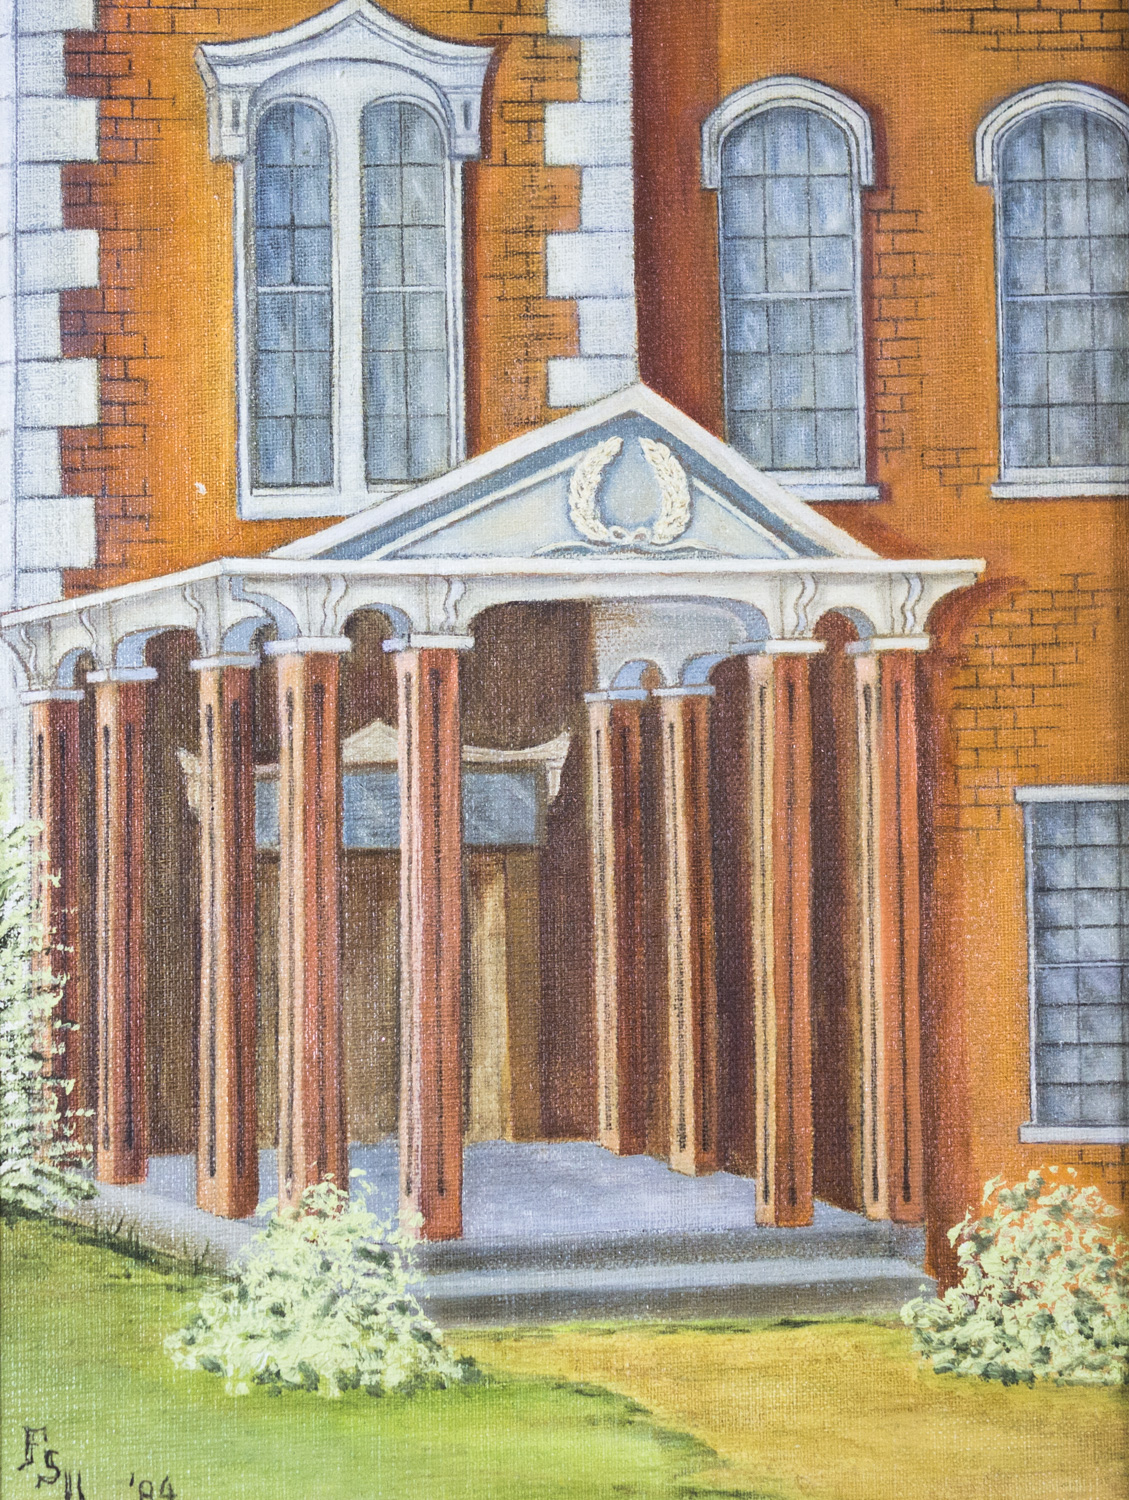 One-Story Columned Entrance on the South side of the Courthouse by Frances Sweat Upchurch, 1984, 11